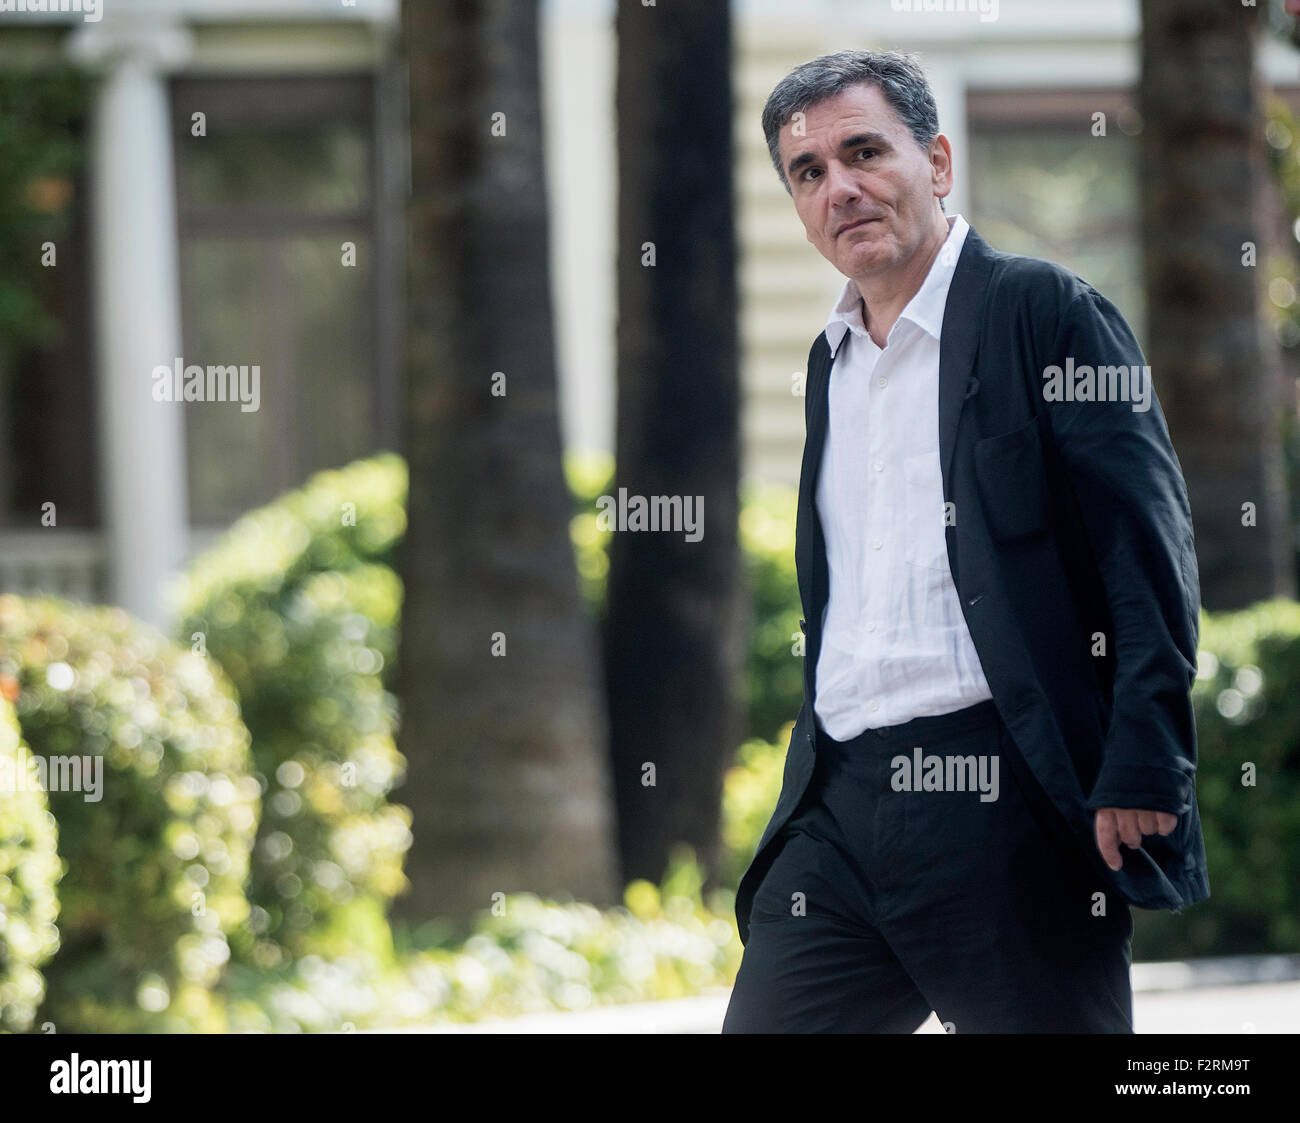 Athens, Greece. 23th Sep, 2015. Greek Finance Minister Euclides Tsakalotos exits the presidential palace after swearing - Stock Image